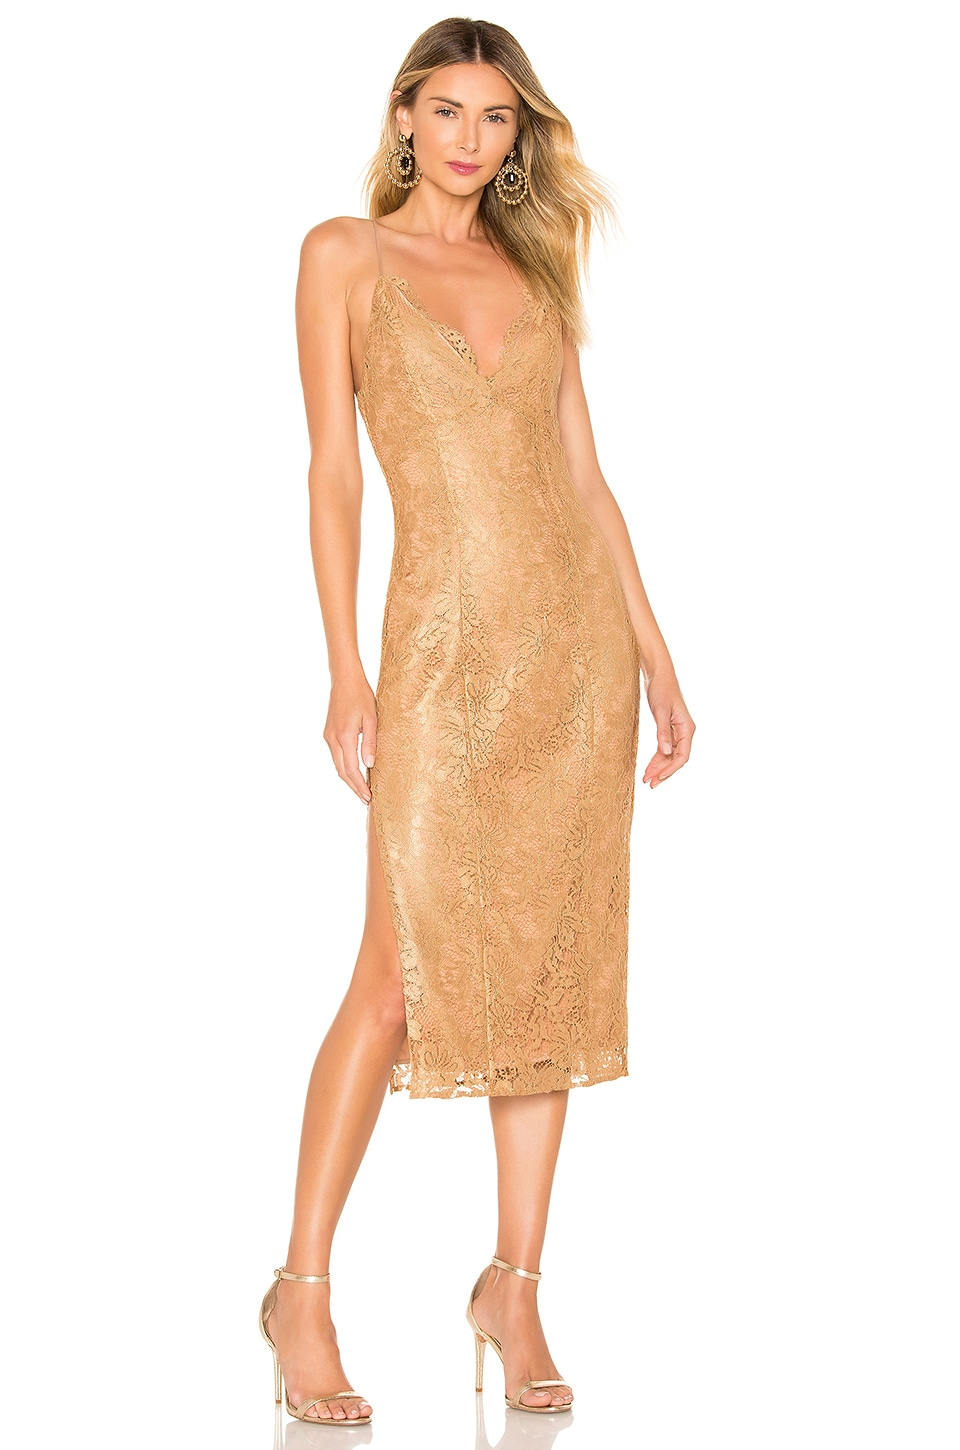 MAJORELLE Brie Midi Dress in Golden Luxe